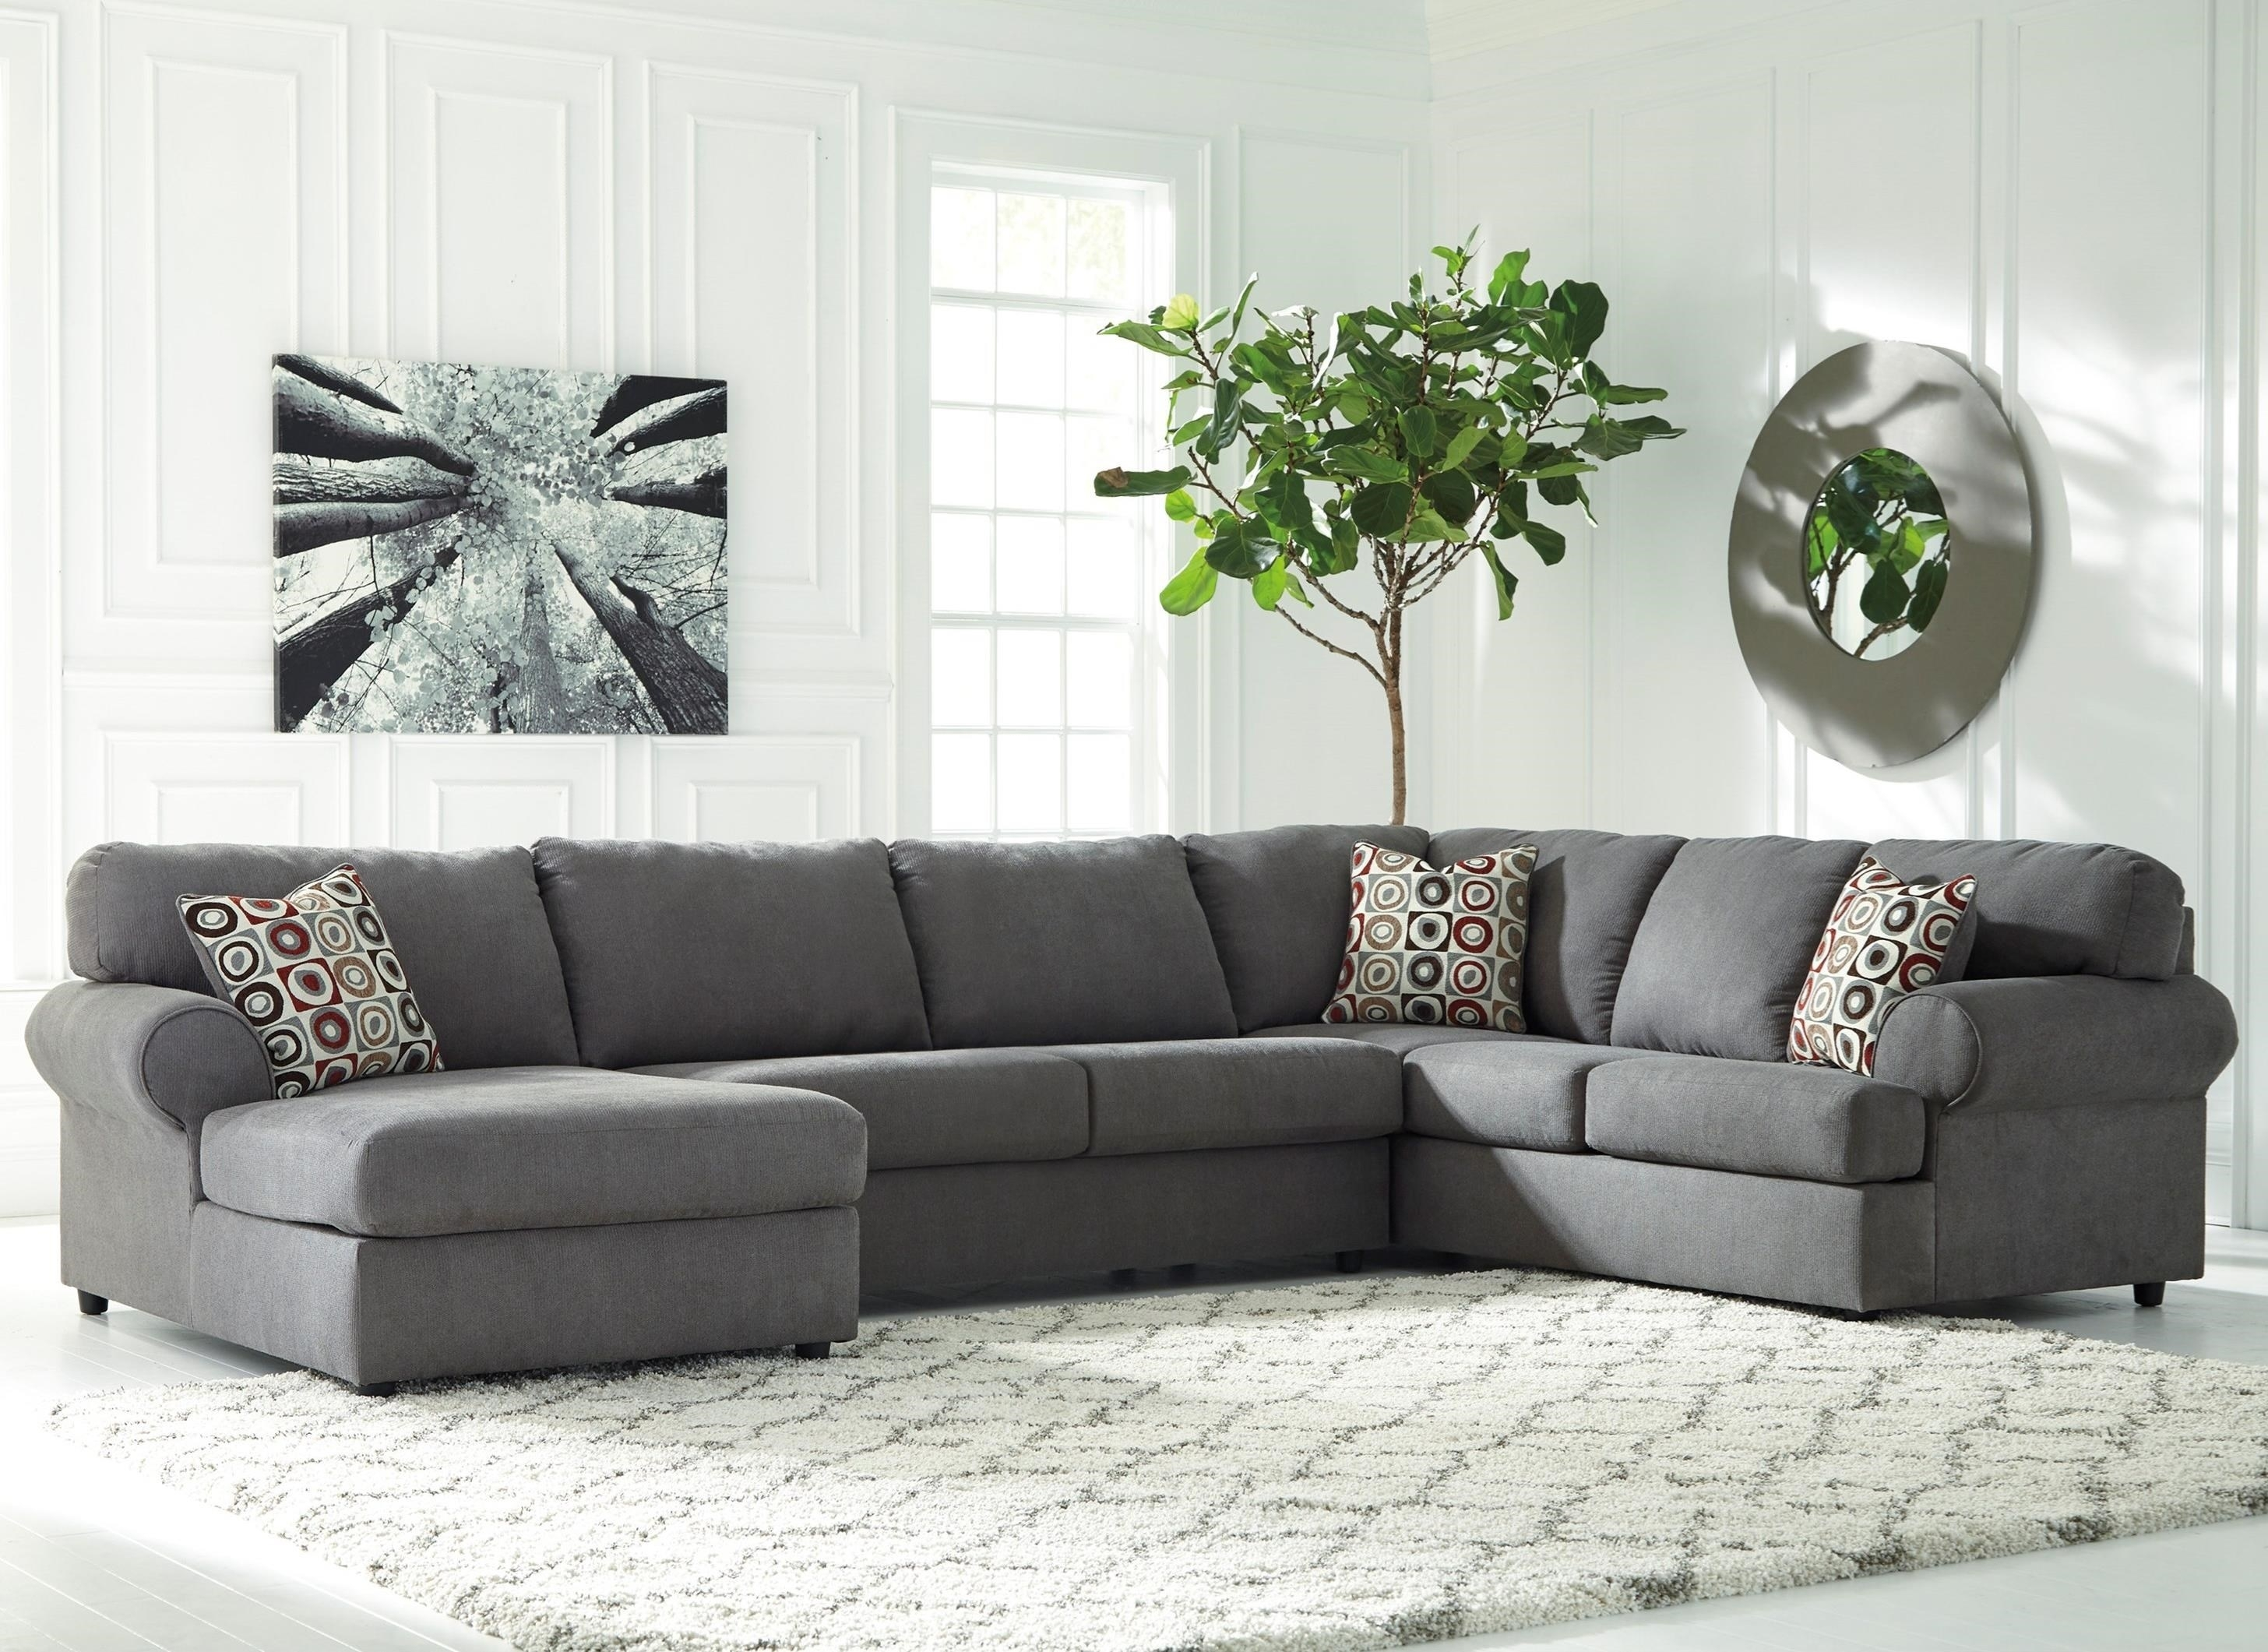 3 Piece Sectional - Locsbyhelenelorasa intended for Malbry Point 3 Piece Sectionals With Raf Chaise